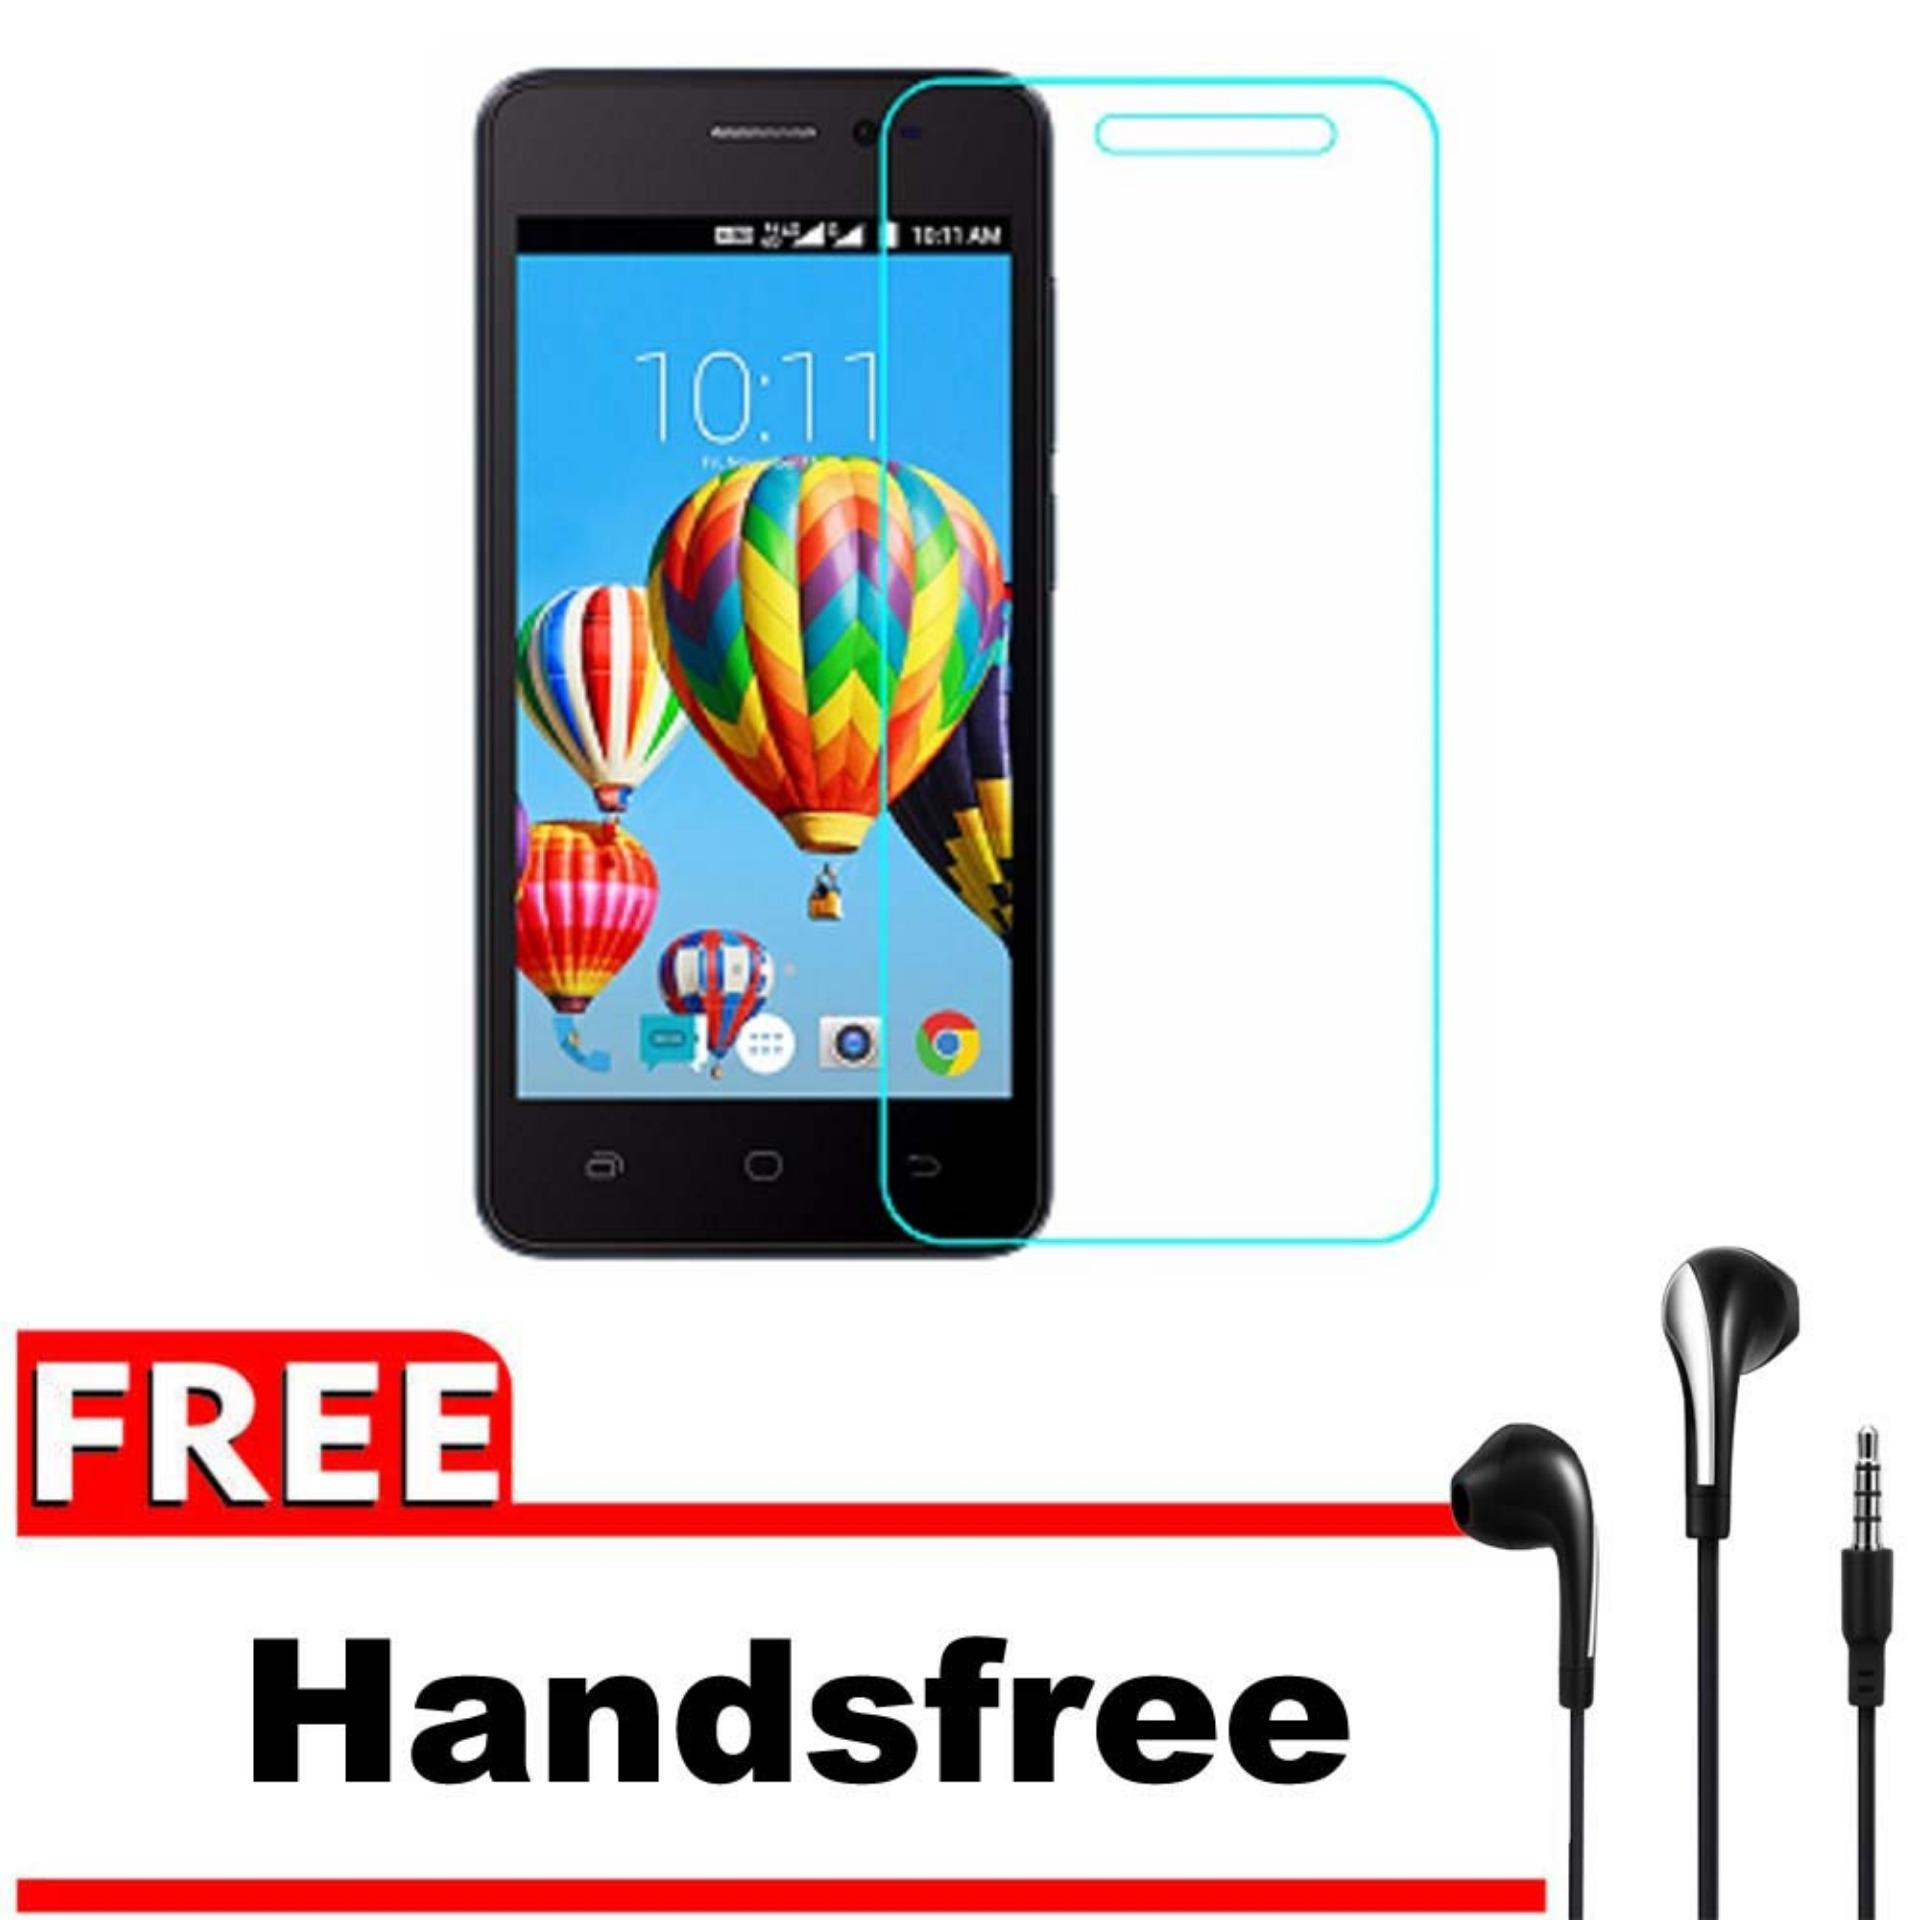 Vn Smartfren Andromax A Tempered Glass 9H Screen Protector 0.32mm + Gratis Free Handsfree Earphone